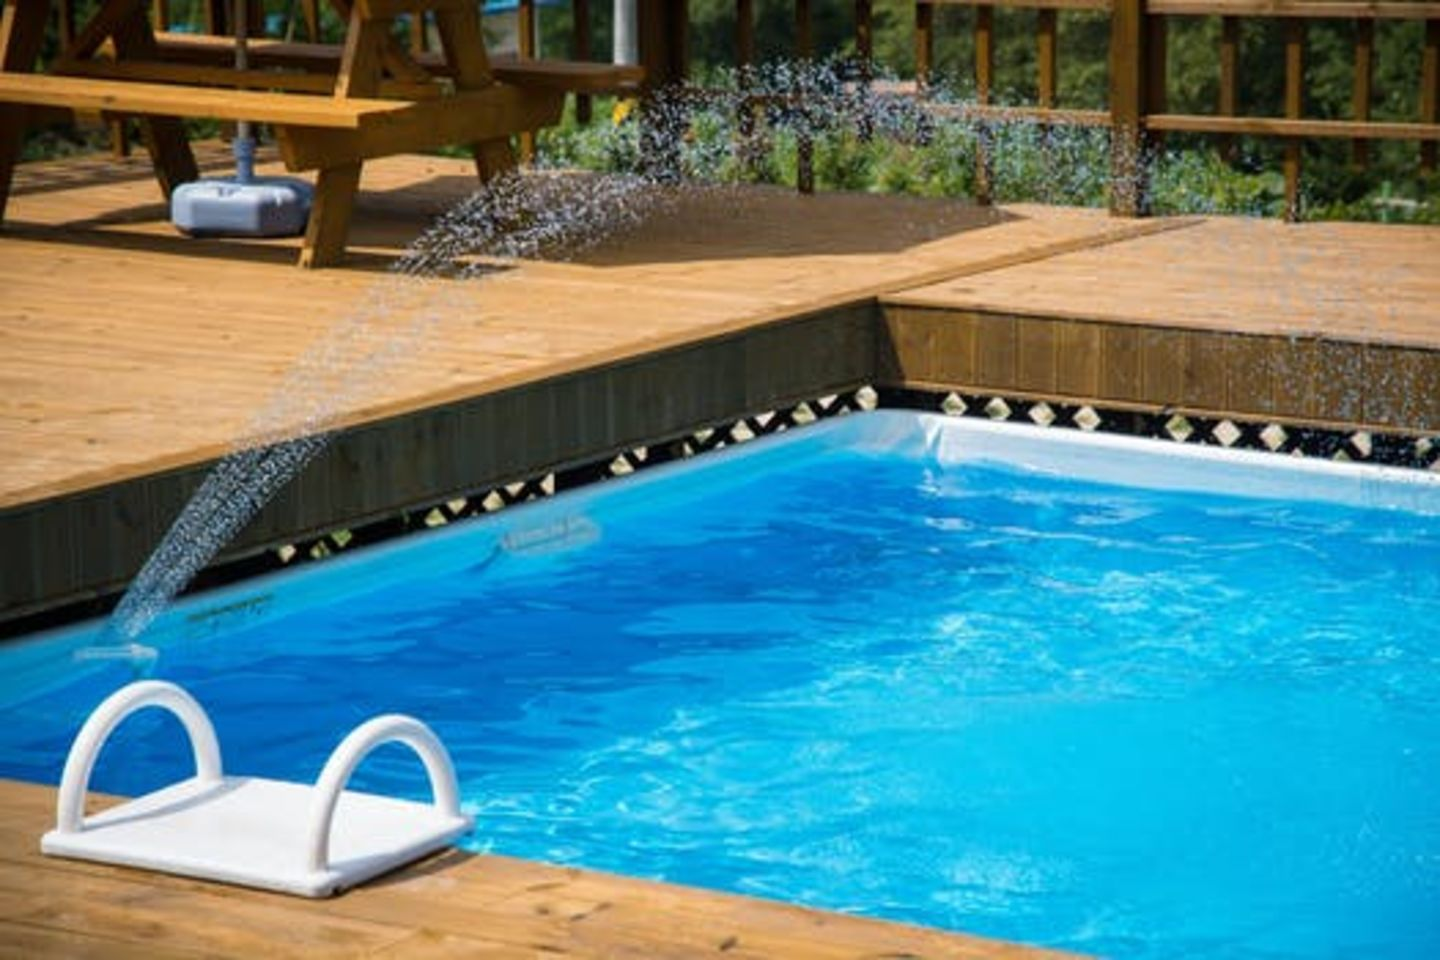 Al Dolphin Swimming Pools & Technical Services, (Gyms ...